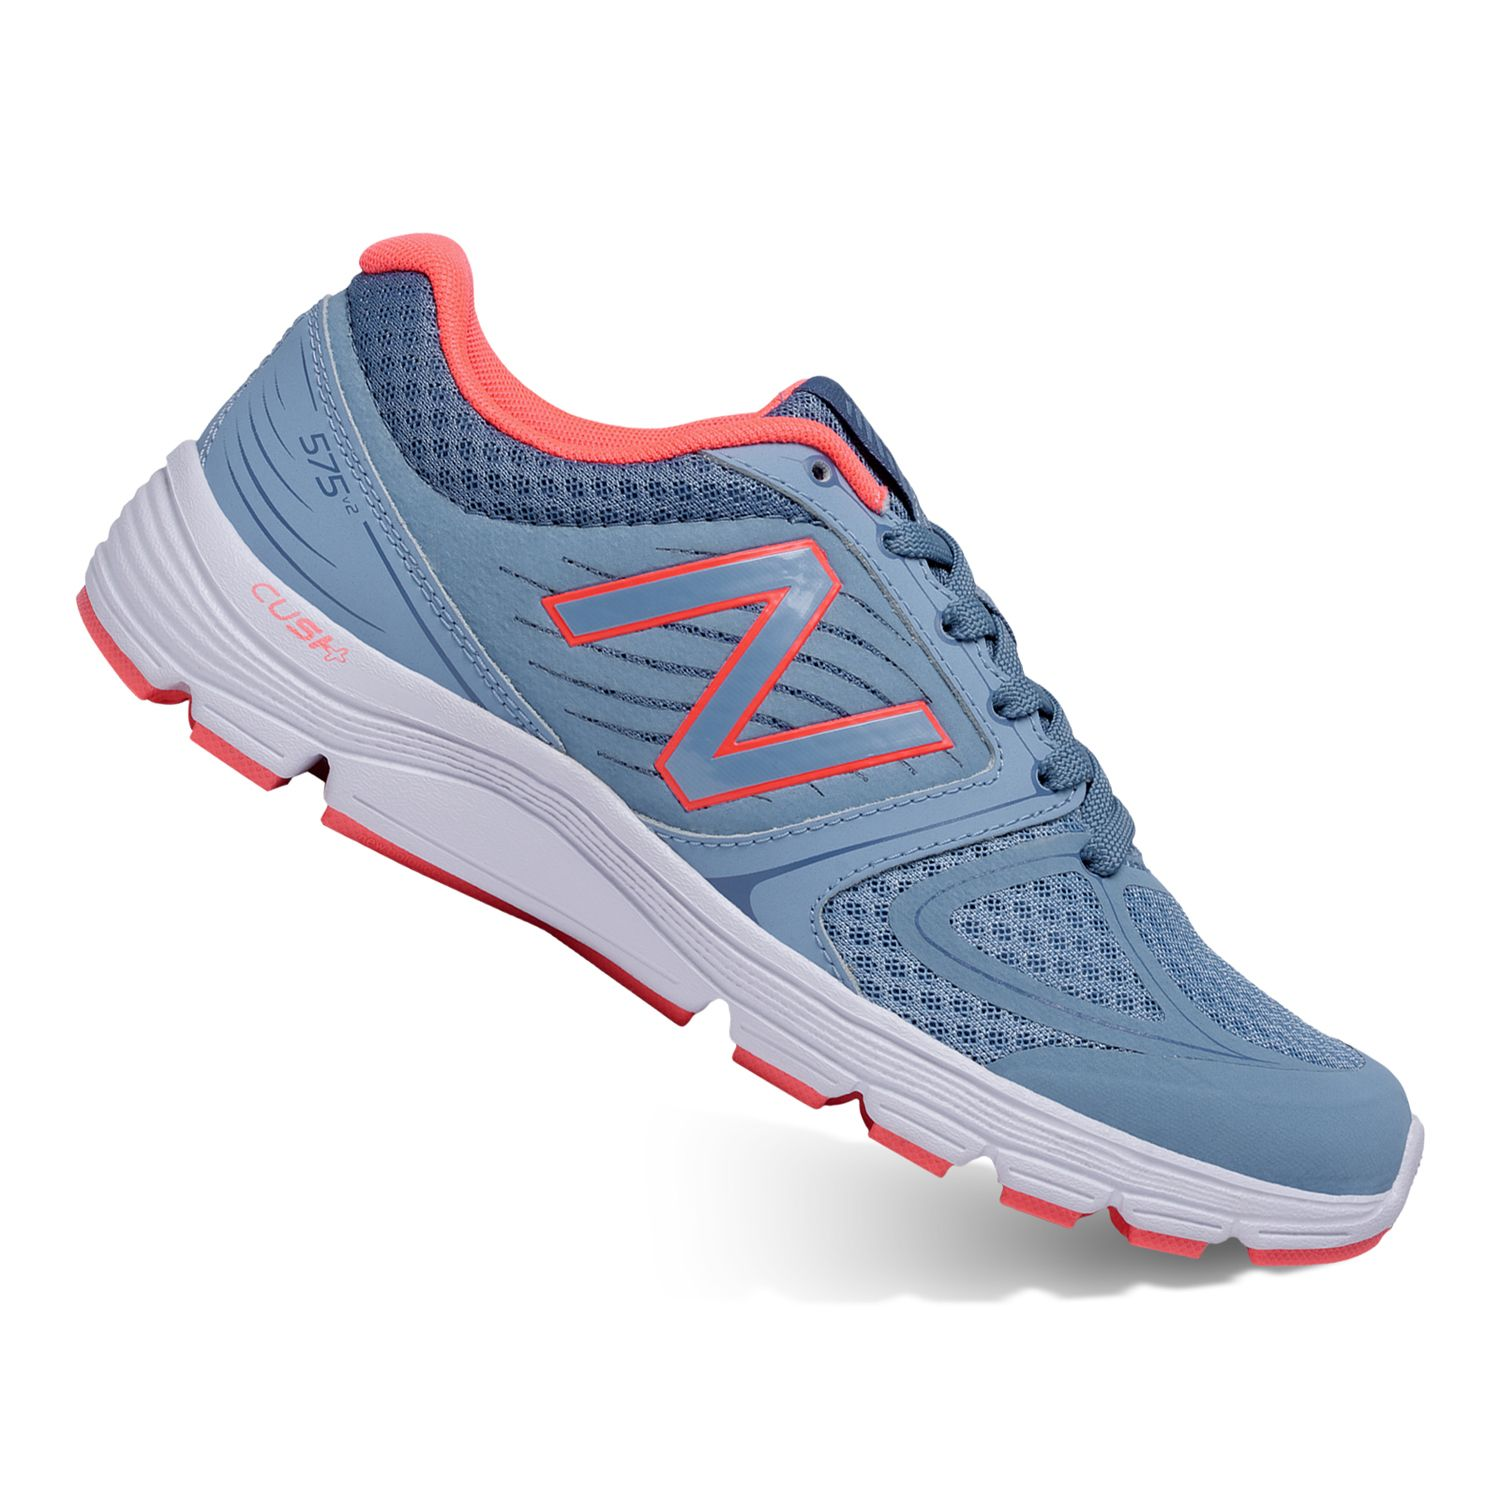 New Balance 575 Cush+ Women\u0026#39;s Running Shoes